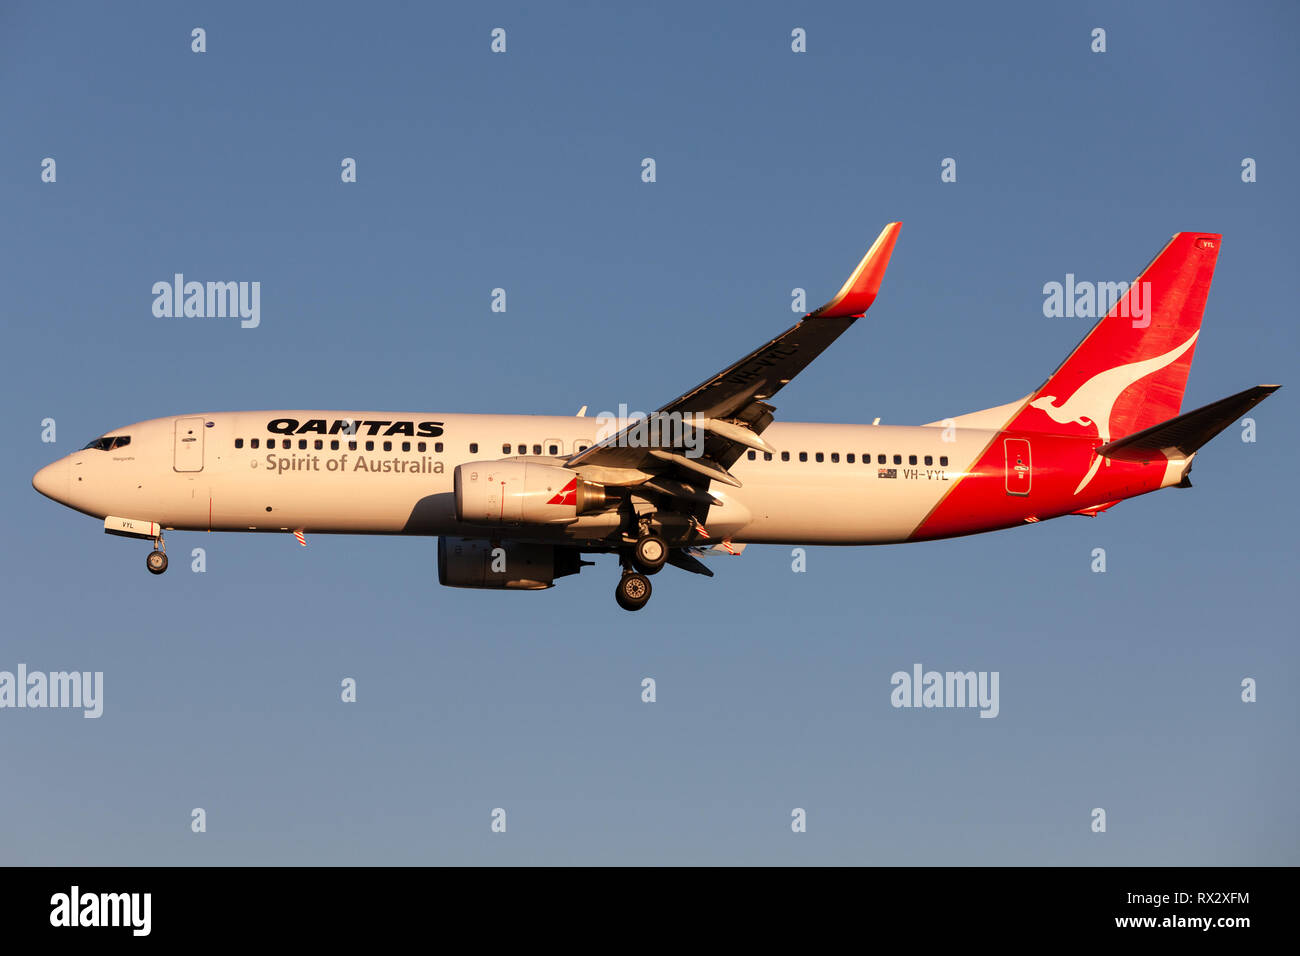 Qantas Boeing 737 aircraft on approach to land at Adelaide Airport. - Stock Image